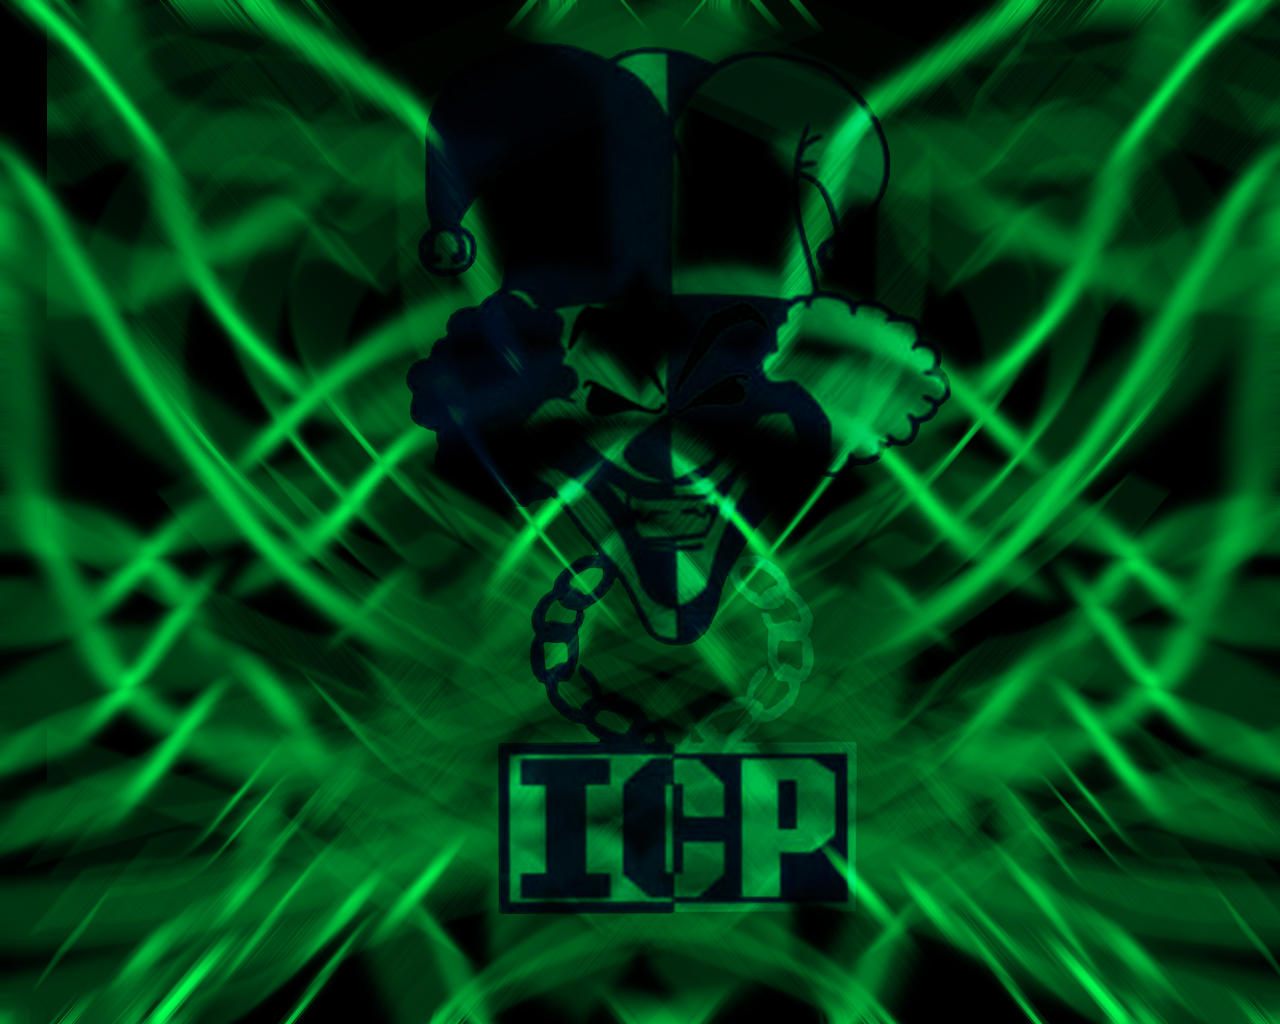 icp hatchet man wallpaper viewing gallery